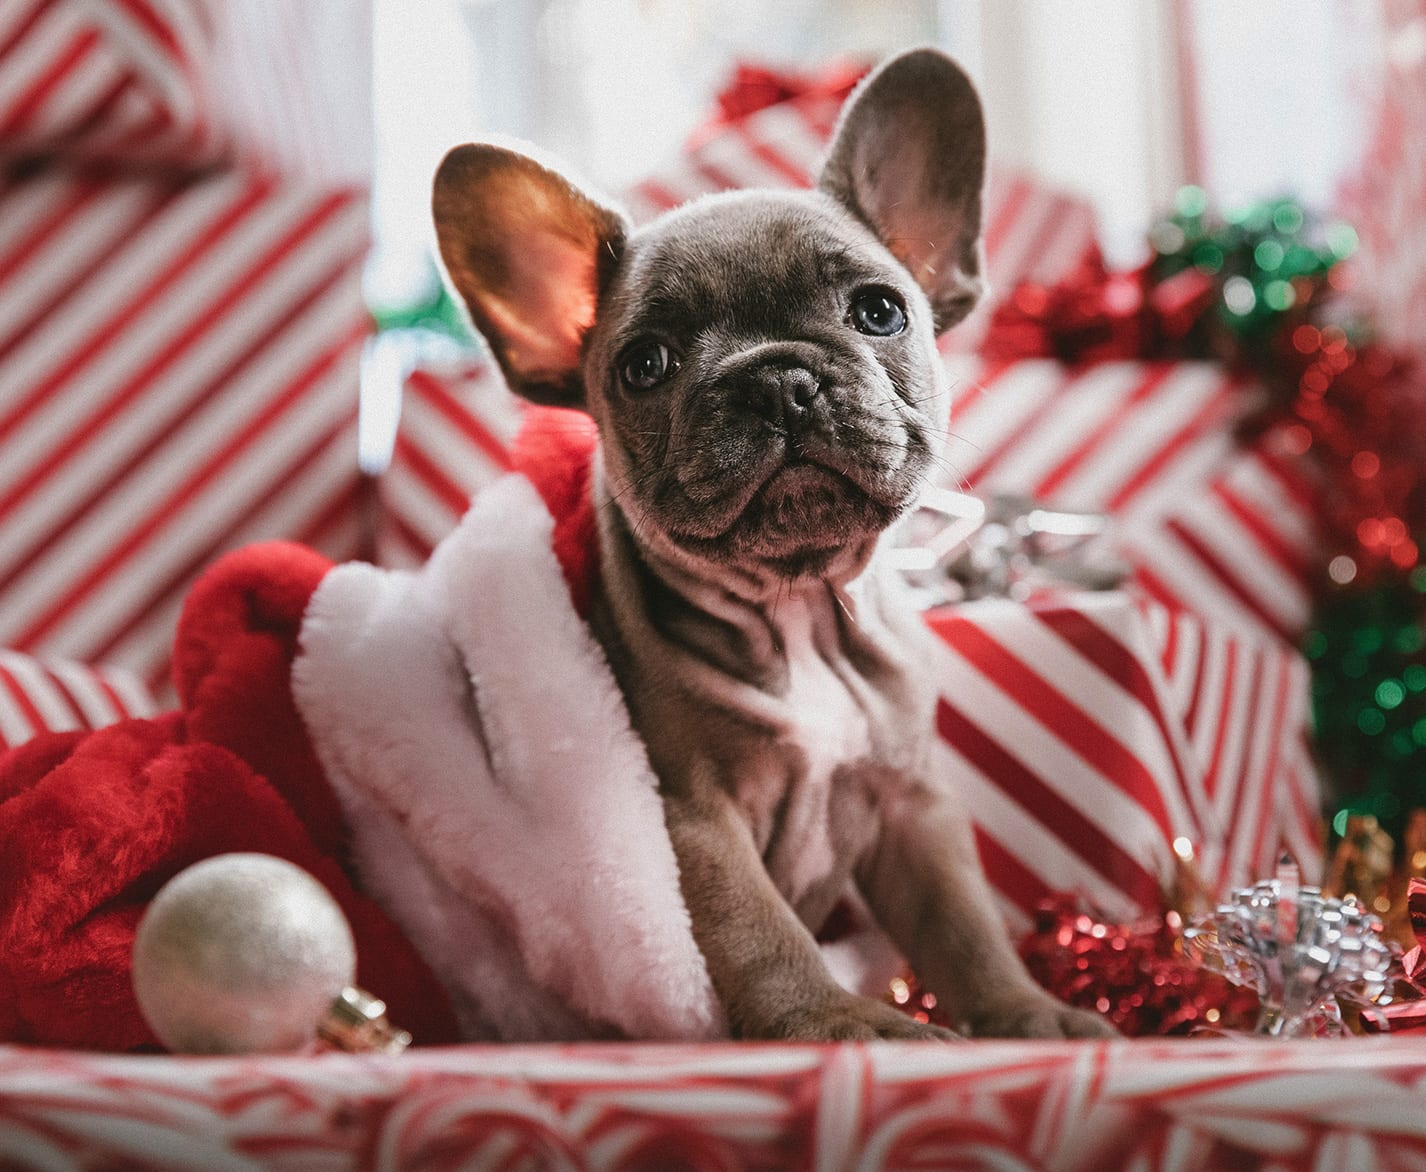 7 Practical Tips on How to Stay Sane This Holiday Season